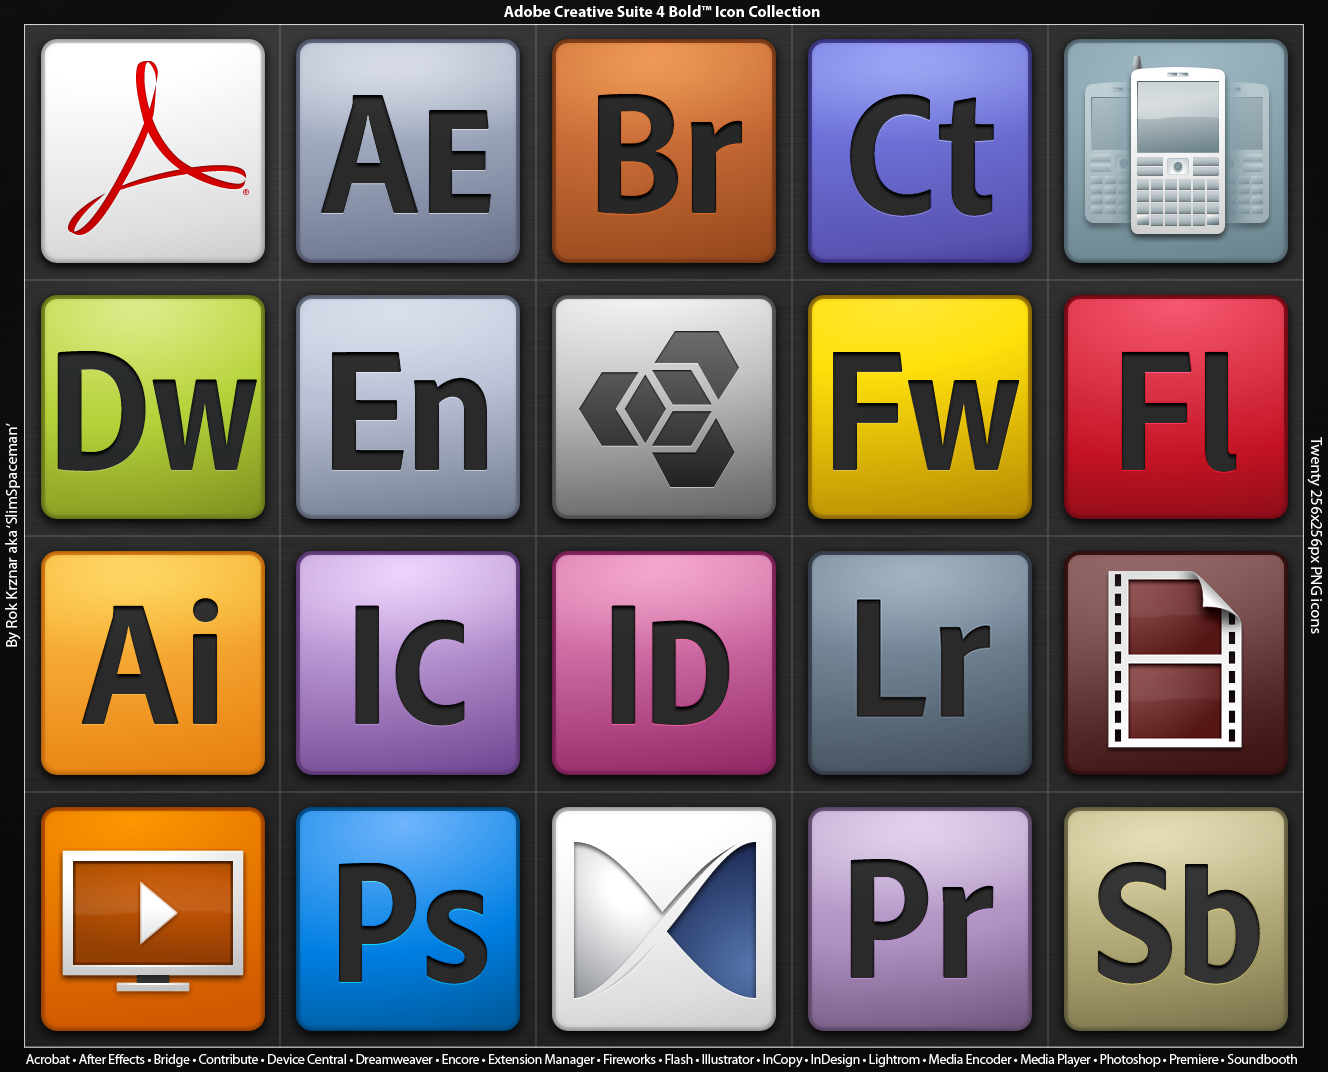 15 adobe suite icons vector images adobe creative suite icons